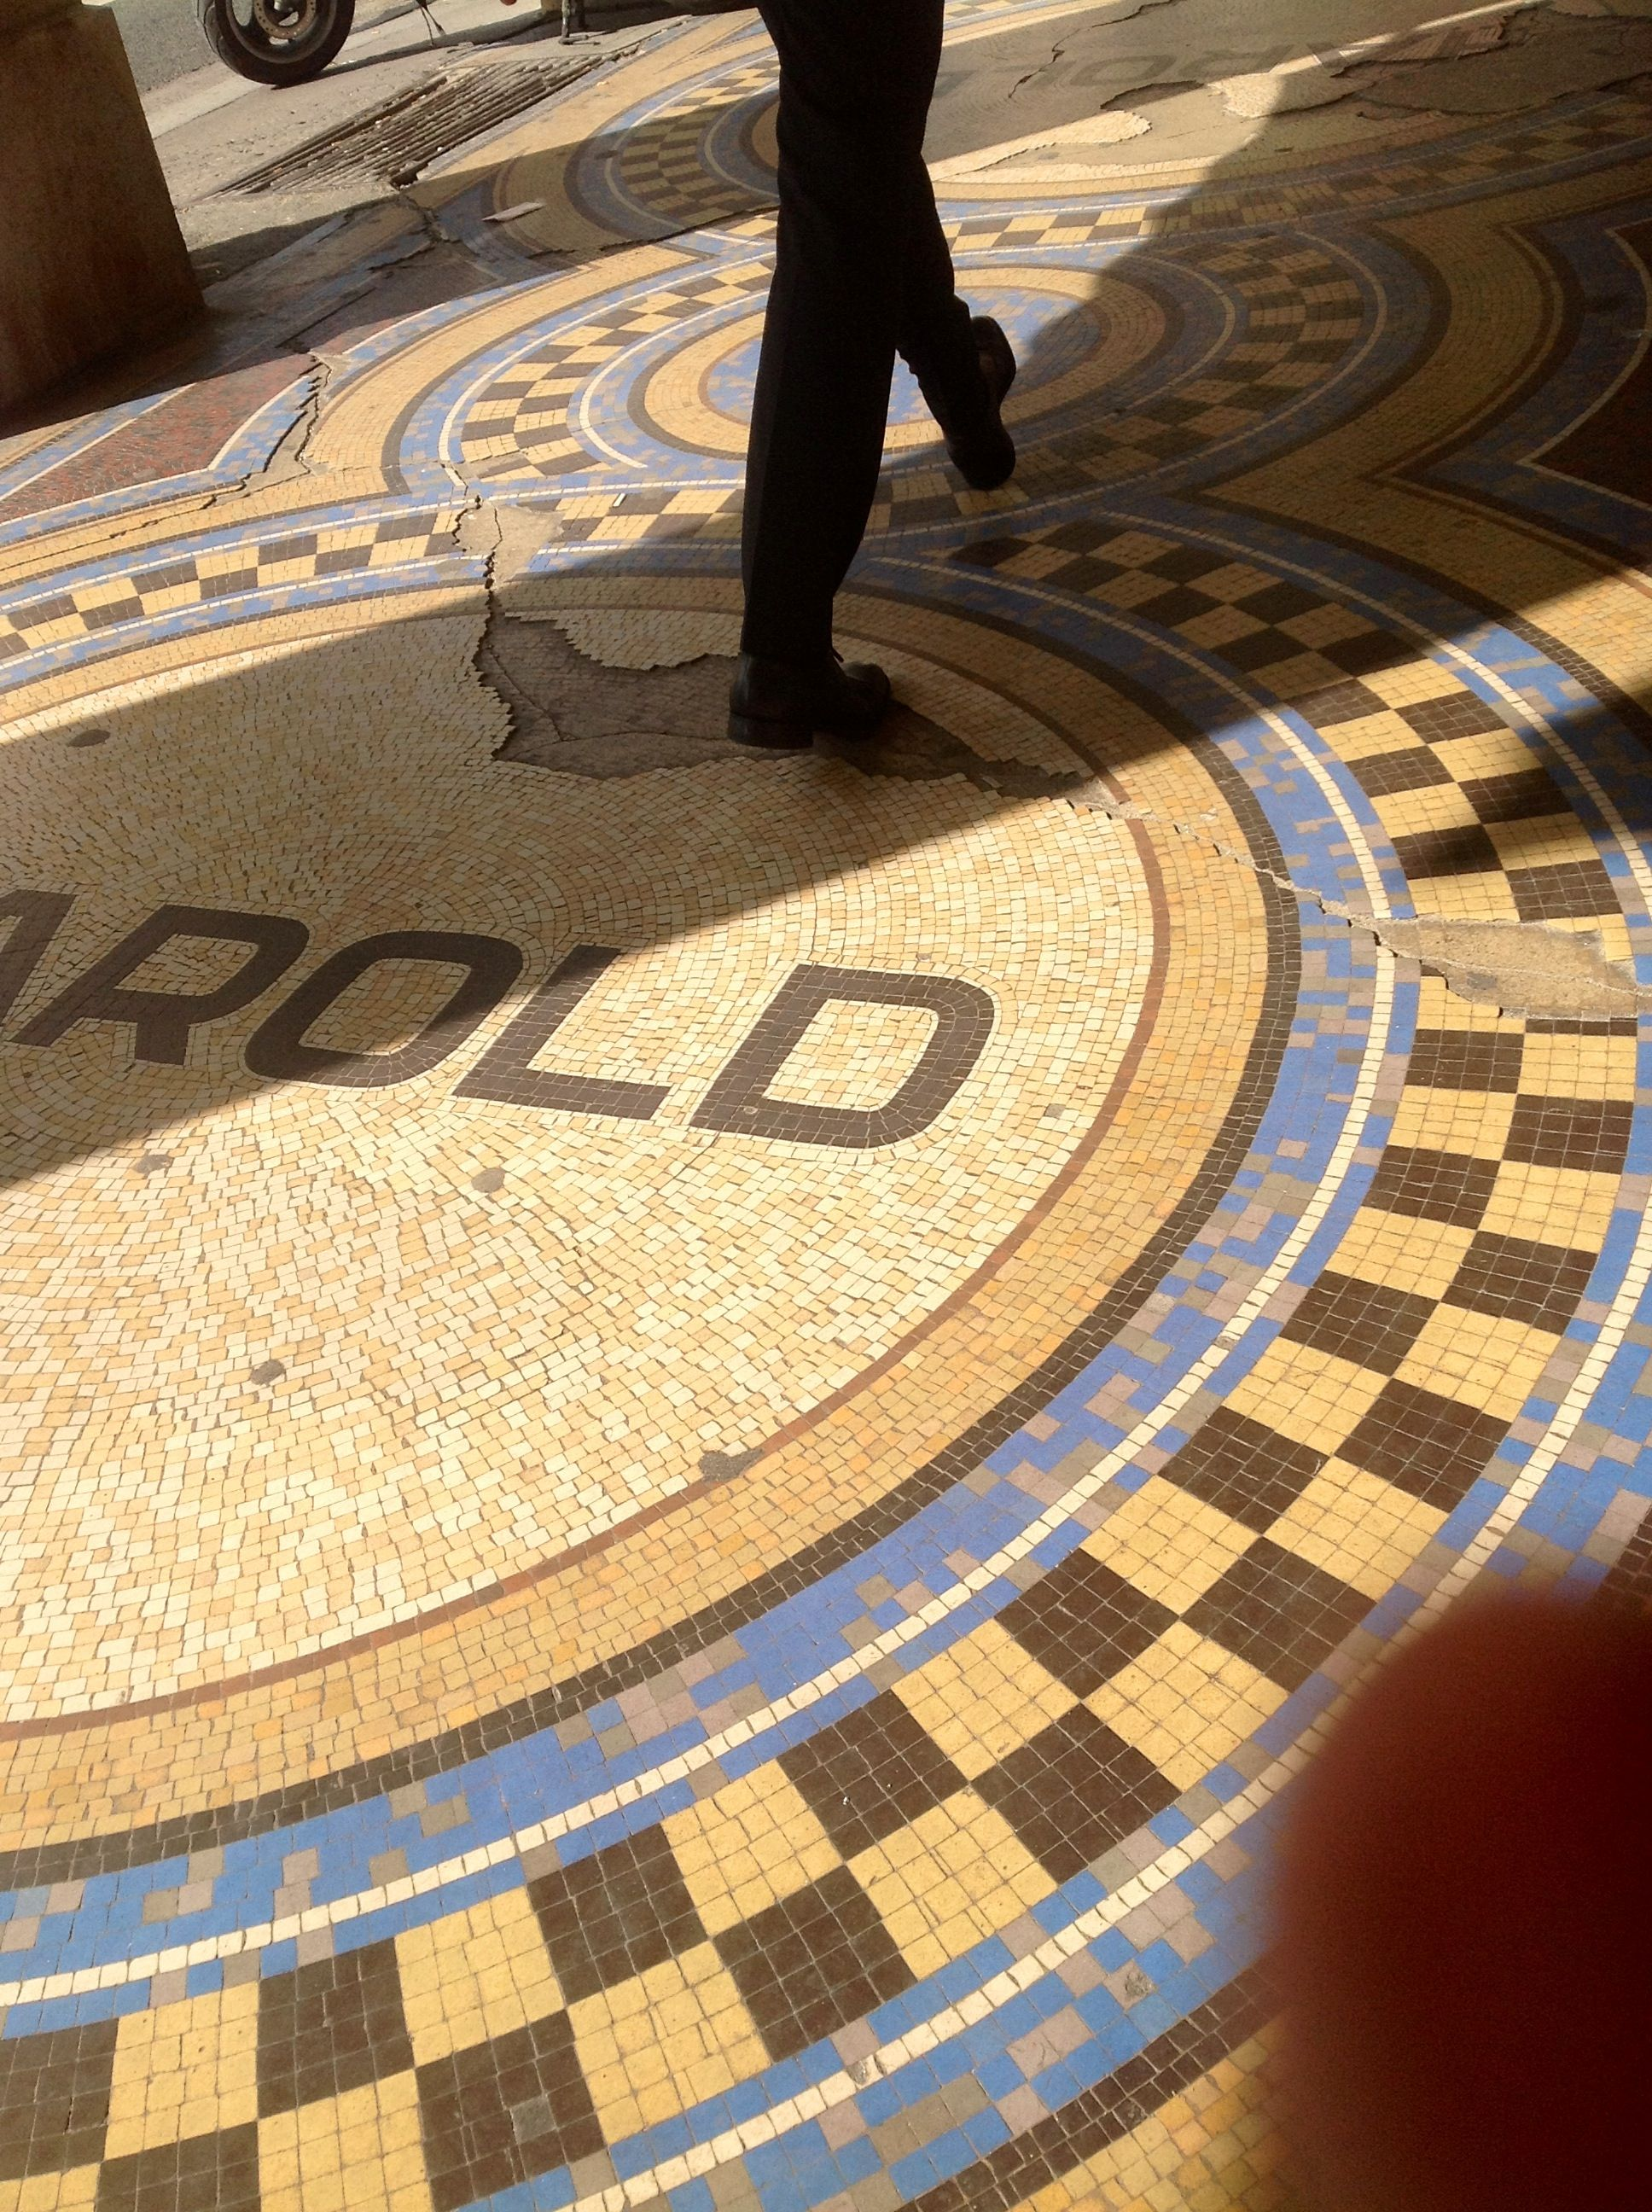 mosaic floor in paris outside cafe | paris | pinterest | mosaic